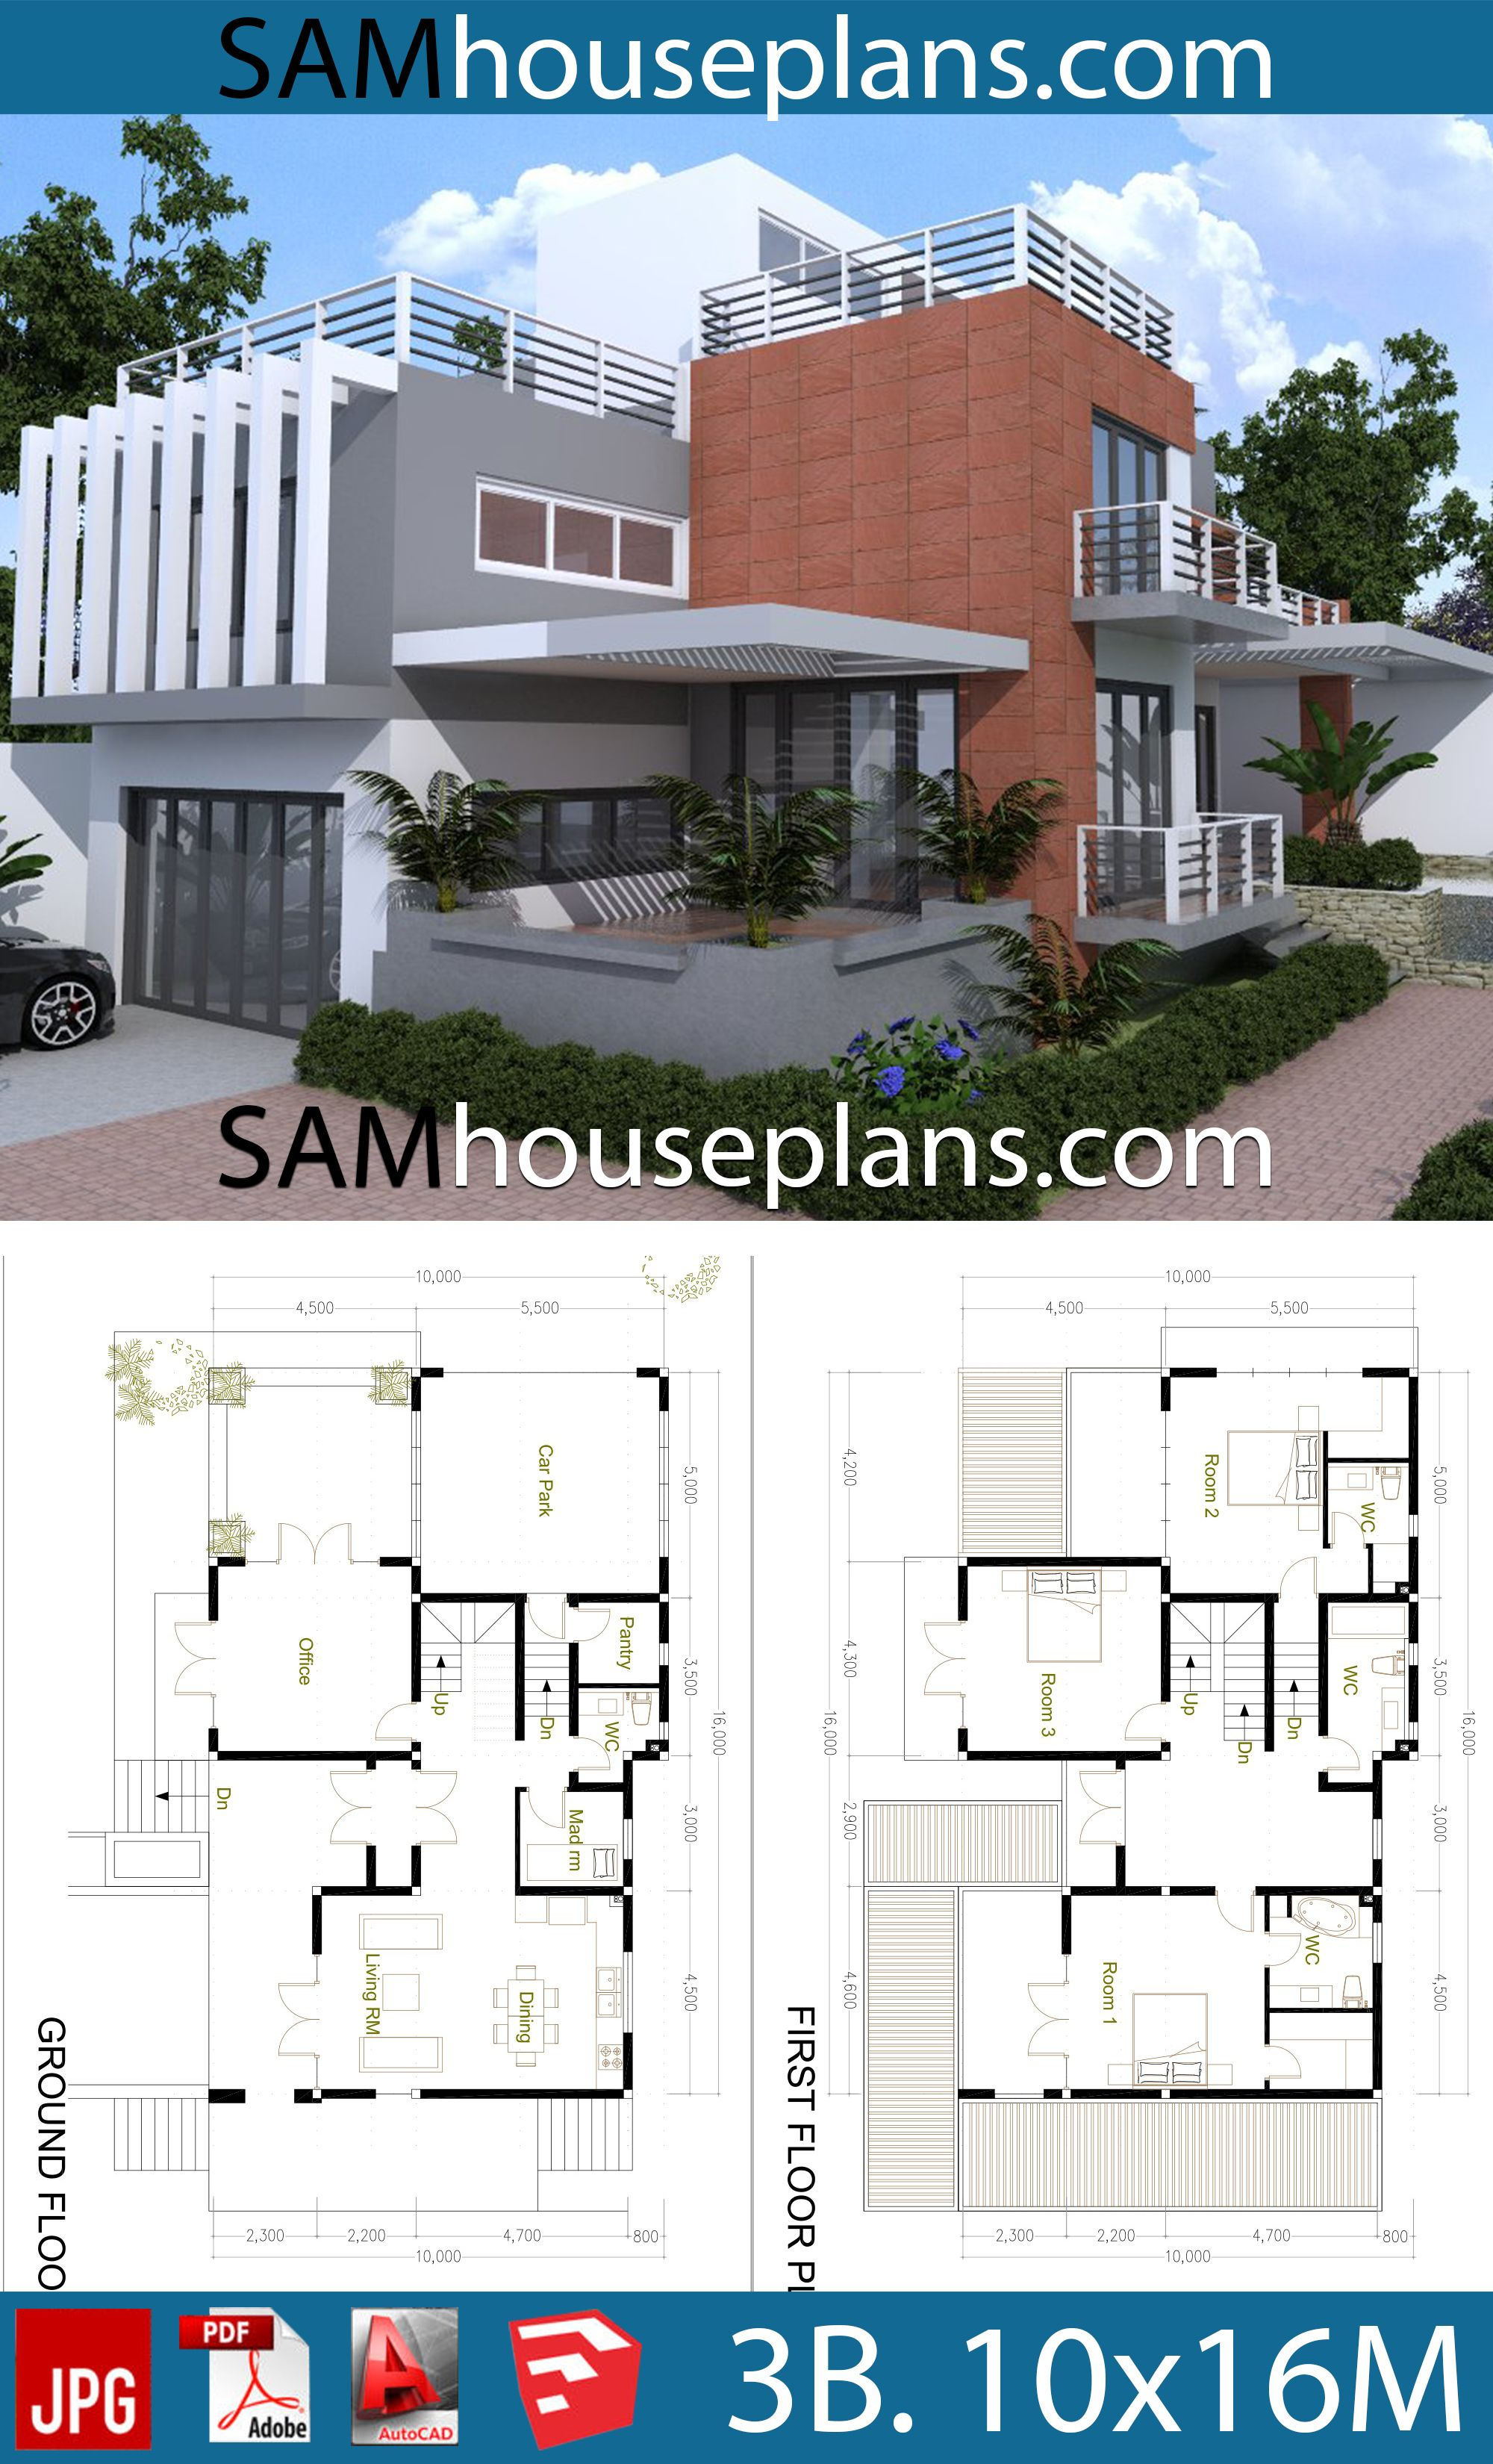 House Plans 10x16 With 3 Bedrooms Sam House Plans In 2020 House Plans House Plans Mansion Bungalow Floor Plans